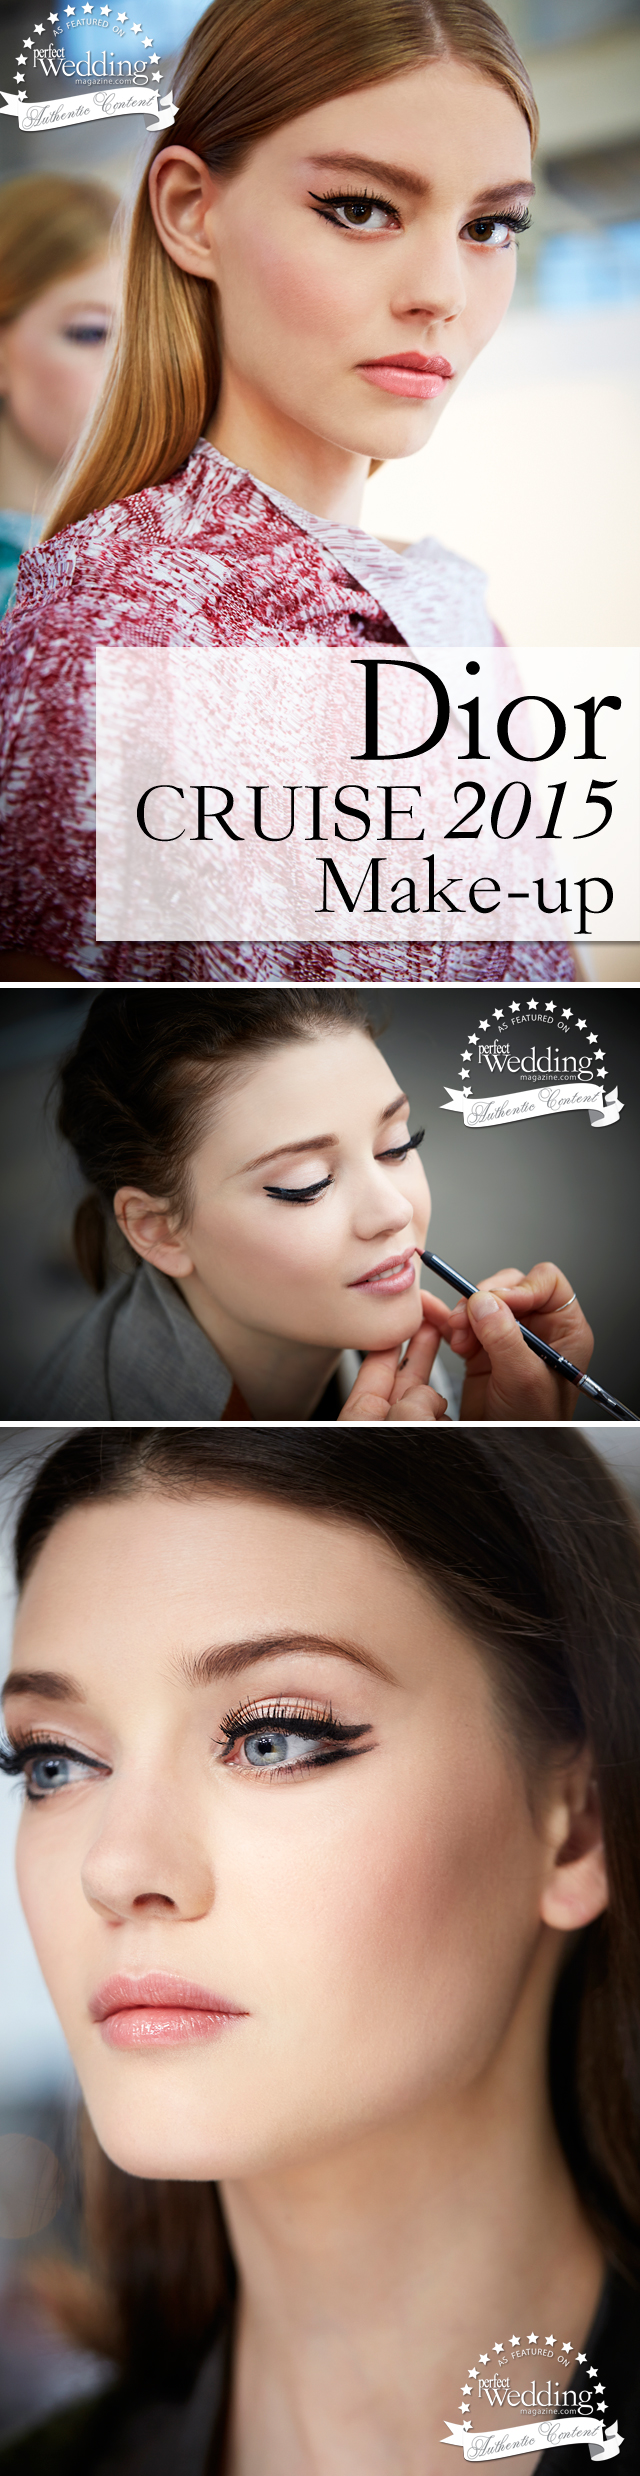 Dior, Dior Cruise 2015 collection, Dior MakeUp, Beauty Trends, Perfect Wedding Magazine, Perfect Wedding Blog